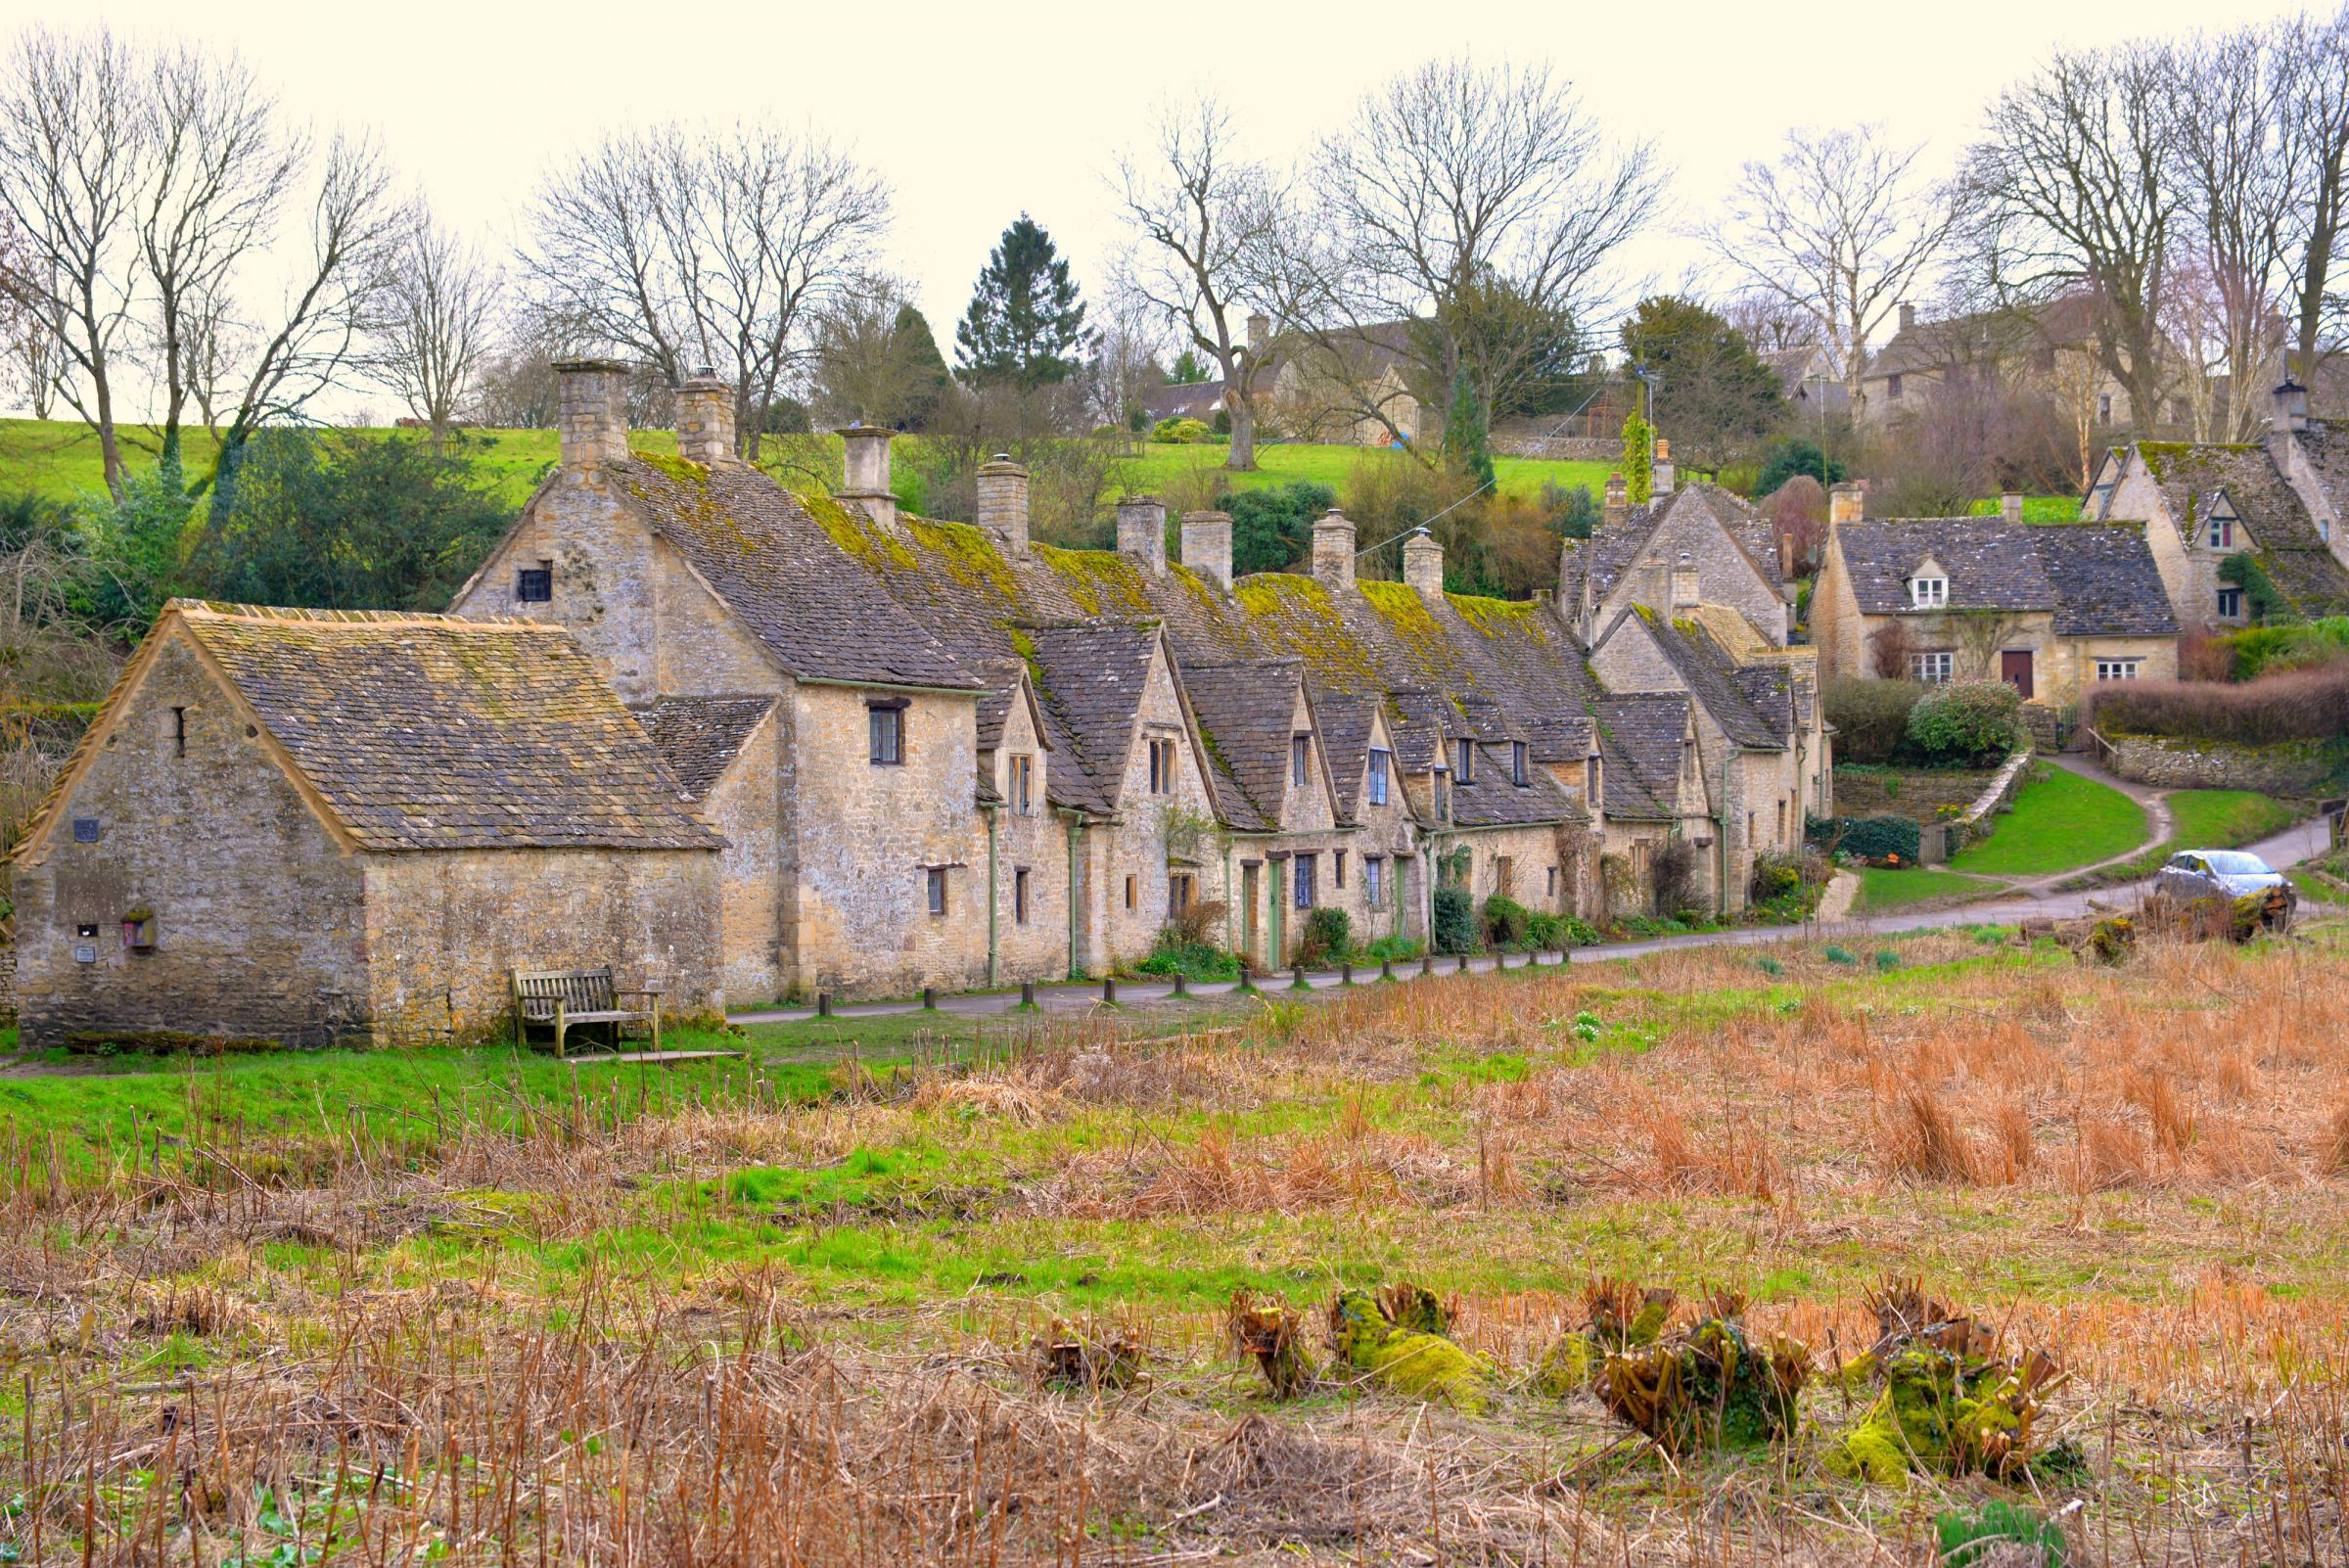 Arlington Row in Bibury. Bibury is holding its first Literary Festival this weekend